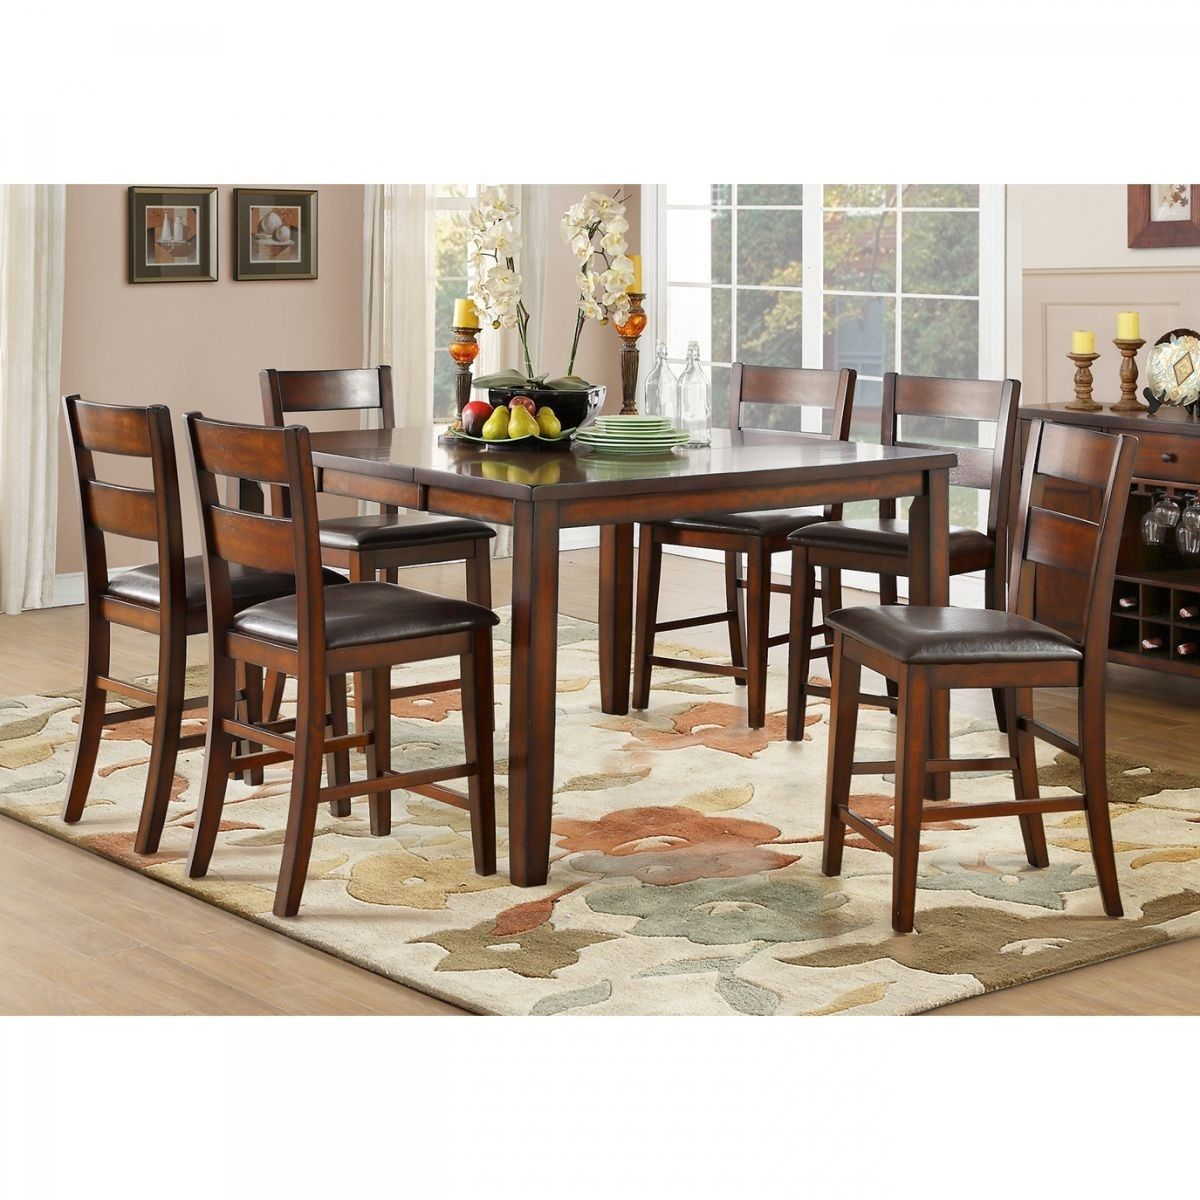 Badcock More Mantello 5 Pc Cherry Counter Height Dining Room Kitchen Table Settings Top Kitchen Table Kitchen Table Wood